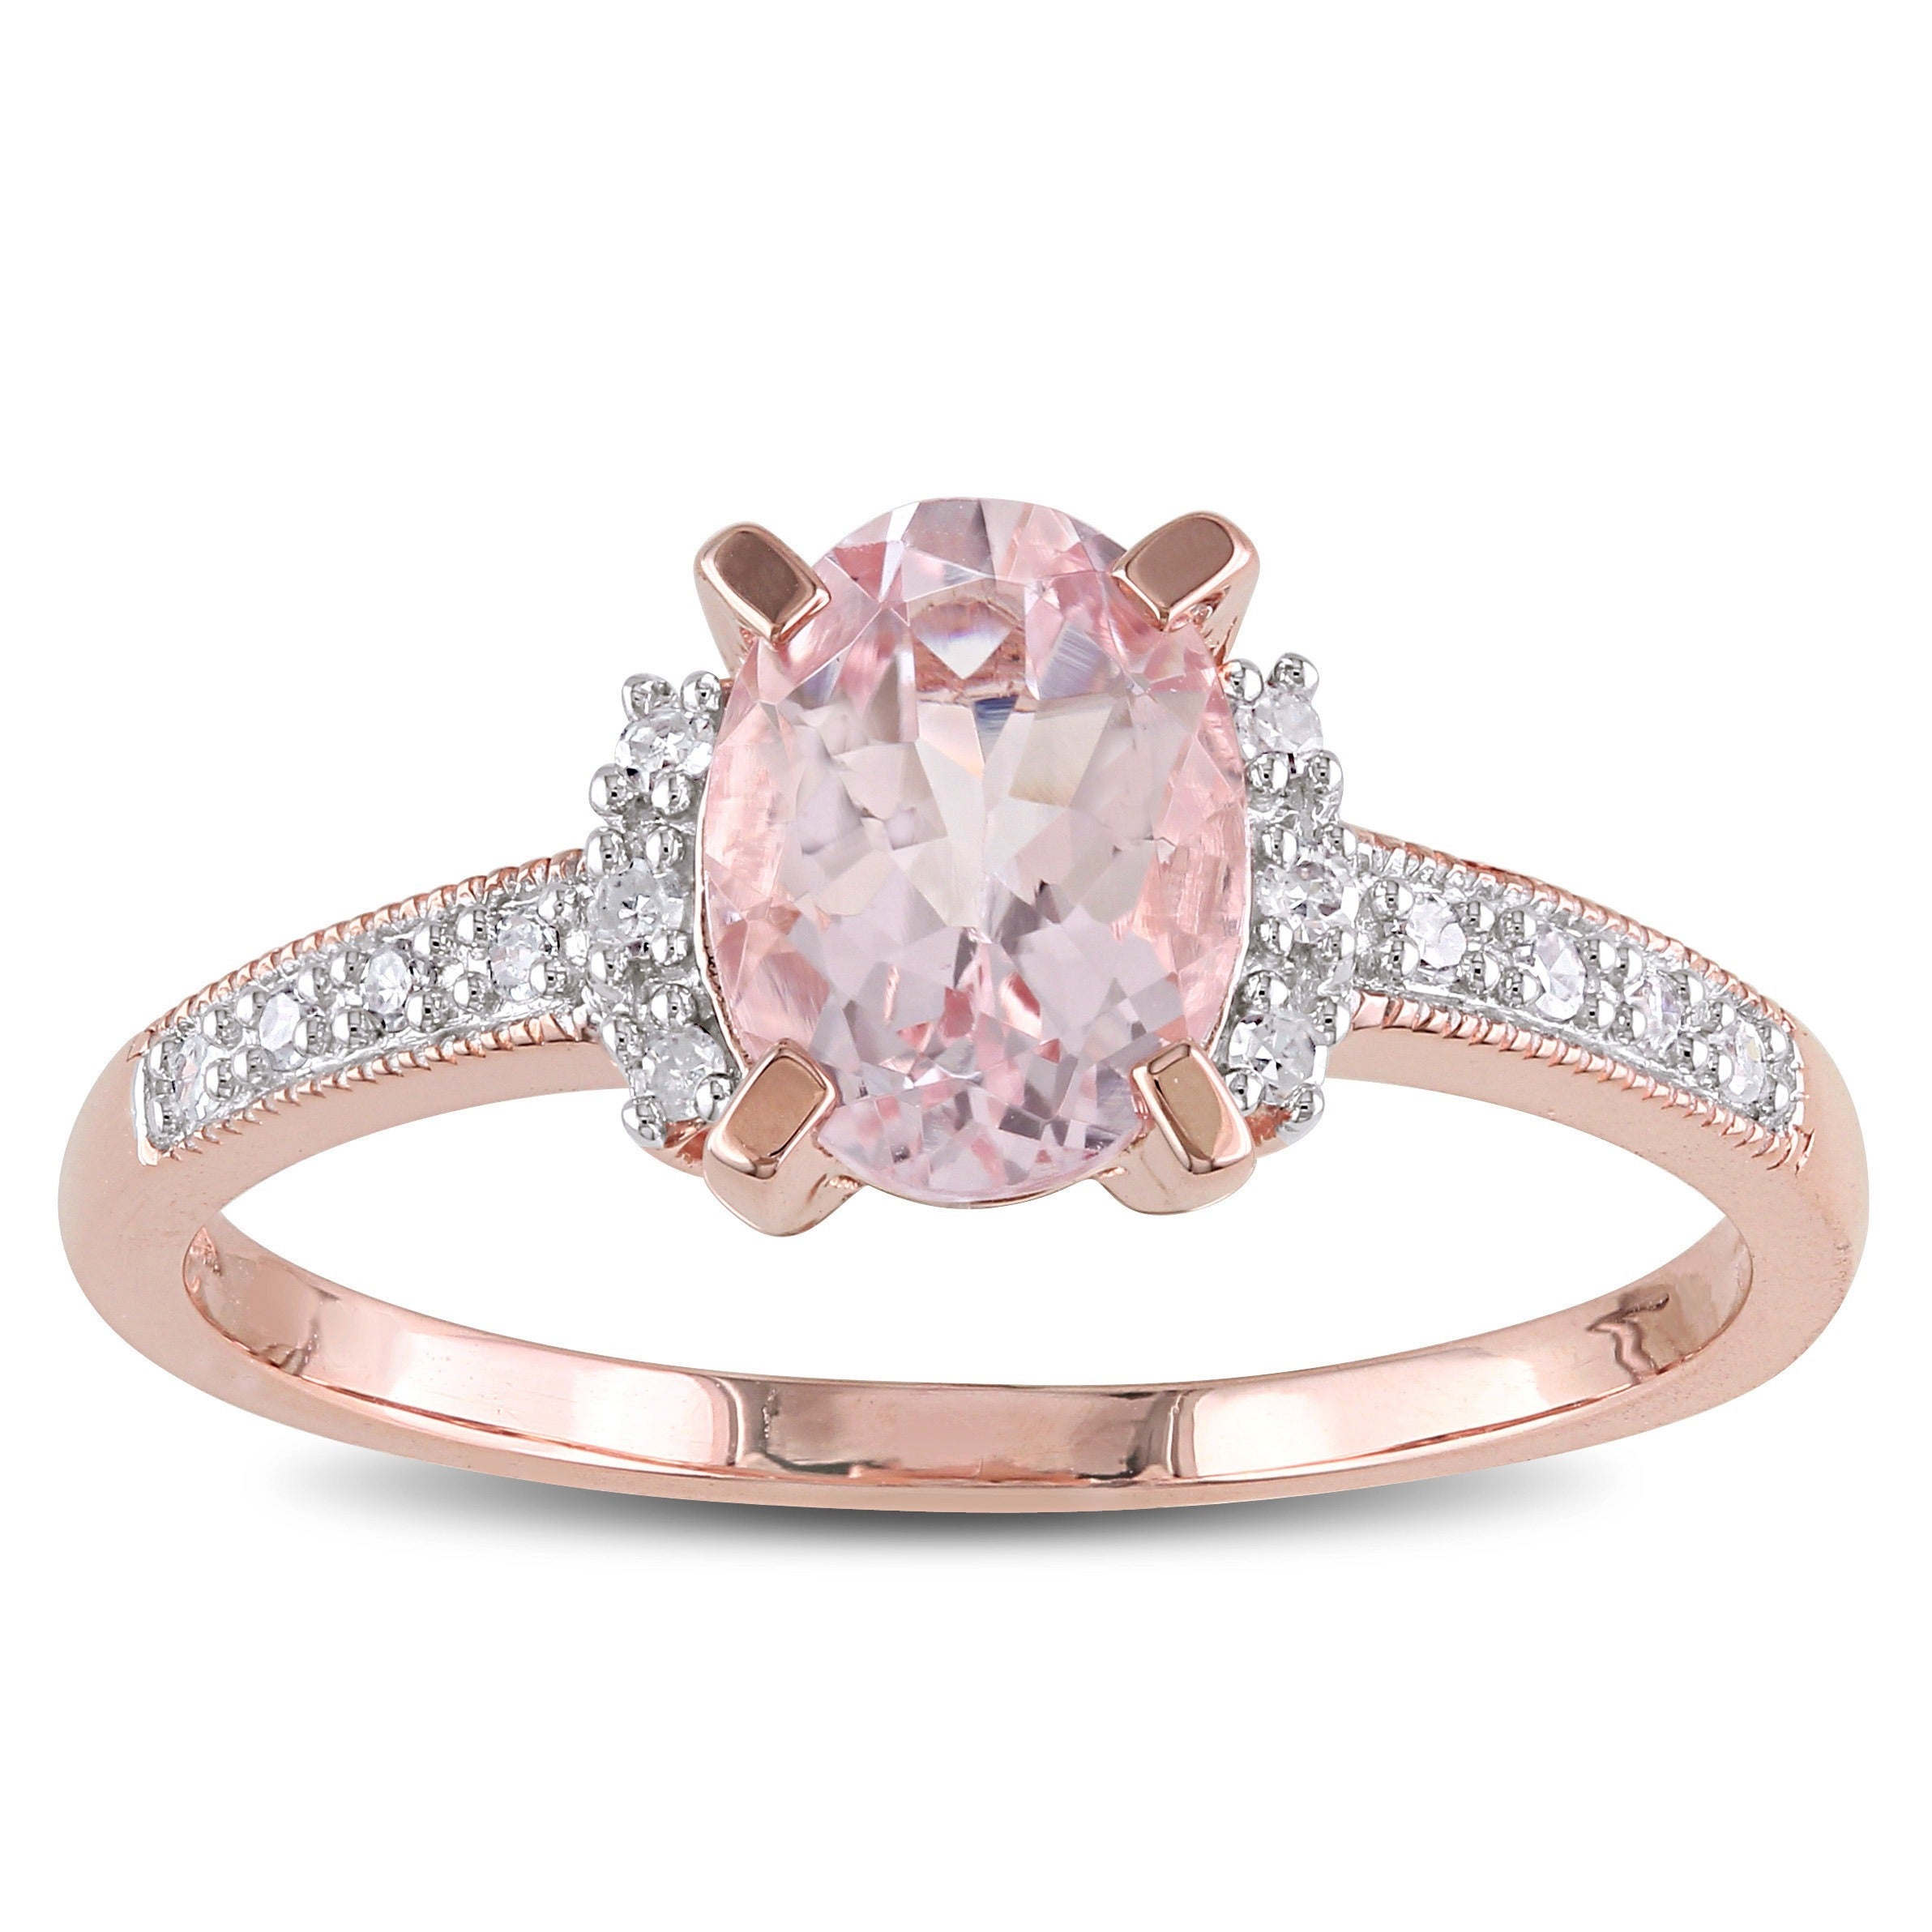 false product scale shop crop ring oval flame diamond with graff cut upscale rings subsampling diamonds pav pink engagement